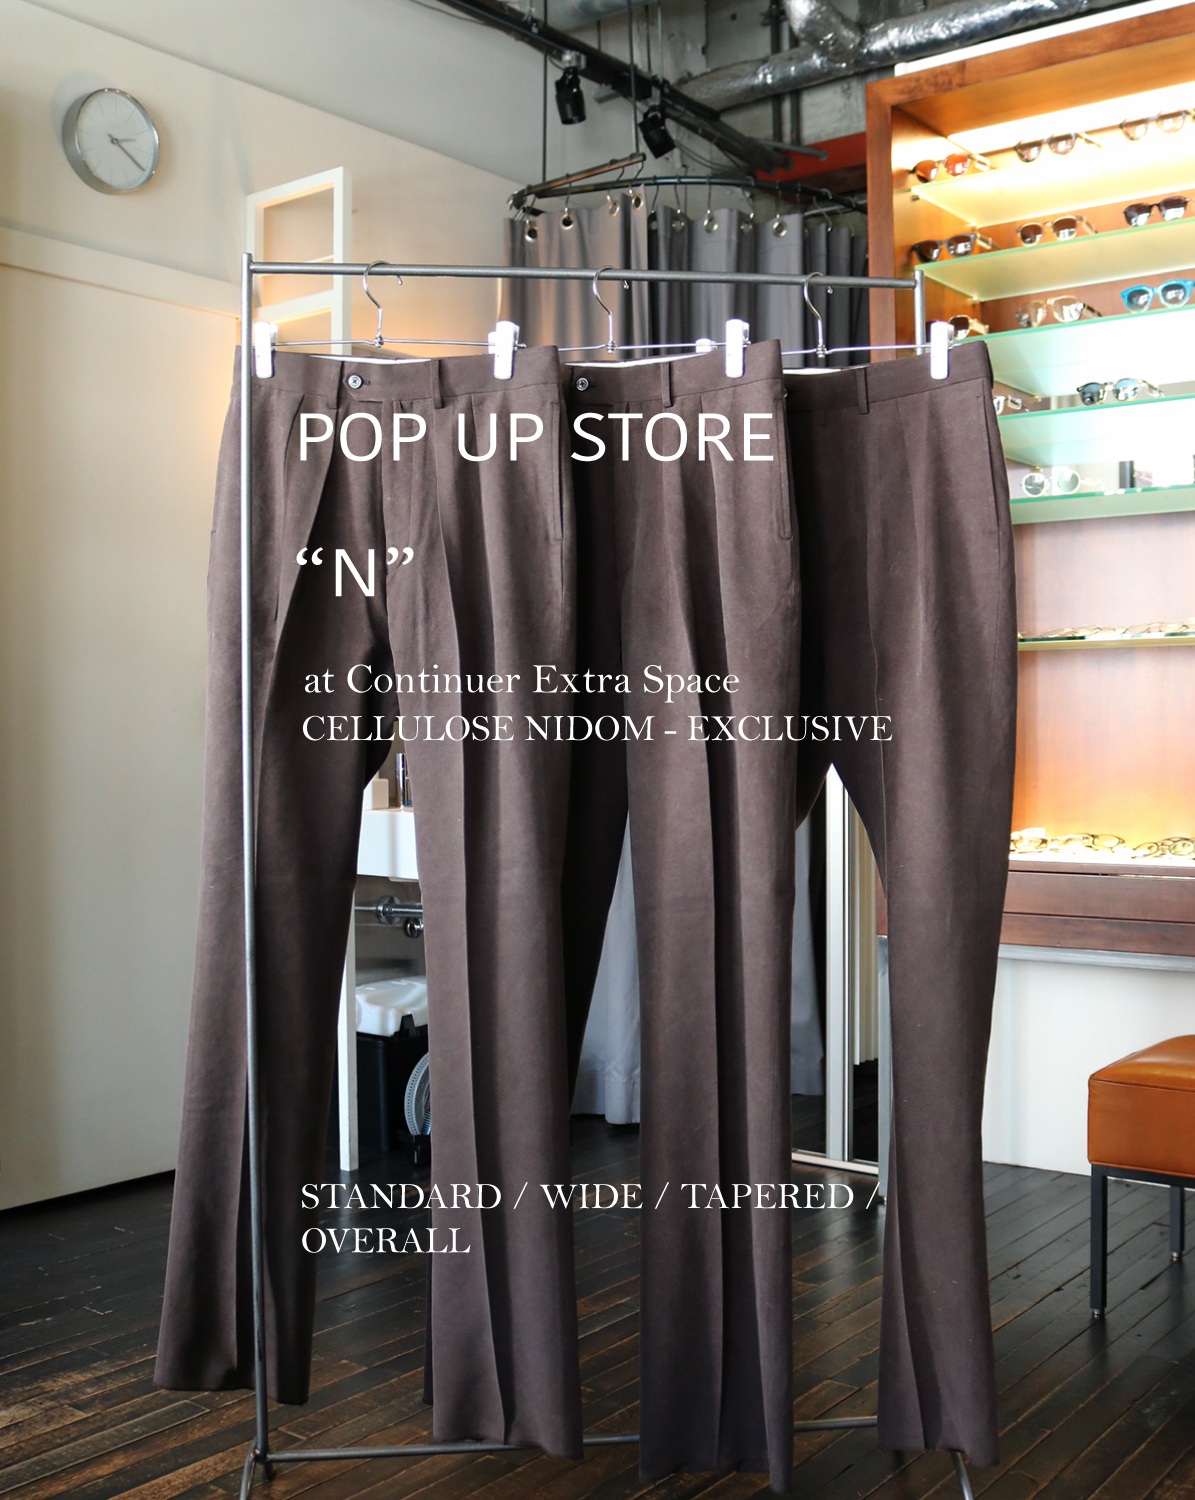 "POP UP STORE ""N"" at Continuer Extra Space"